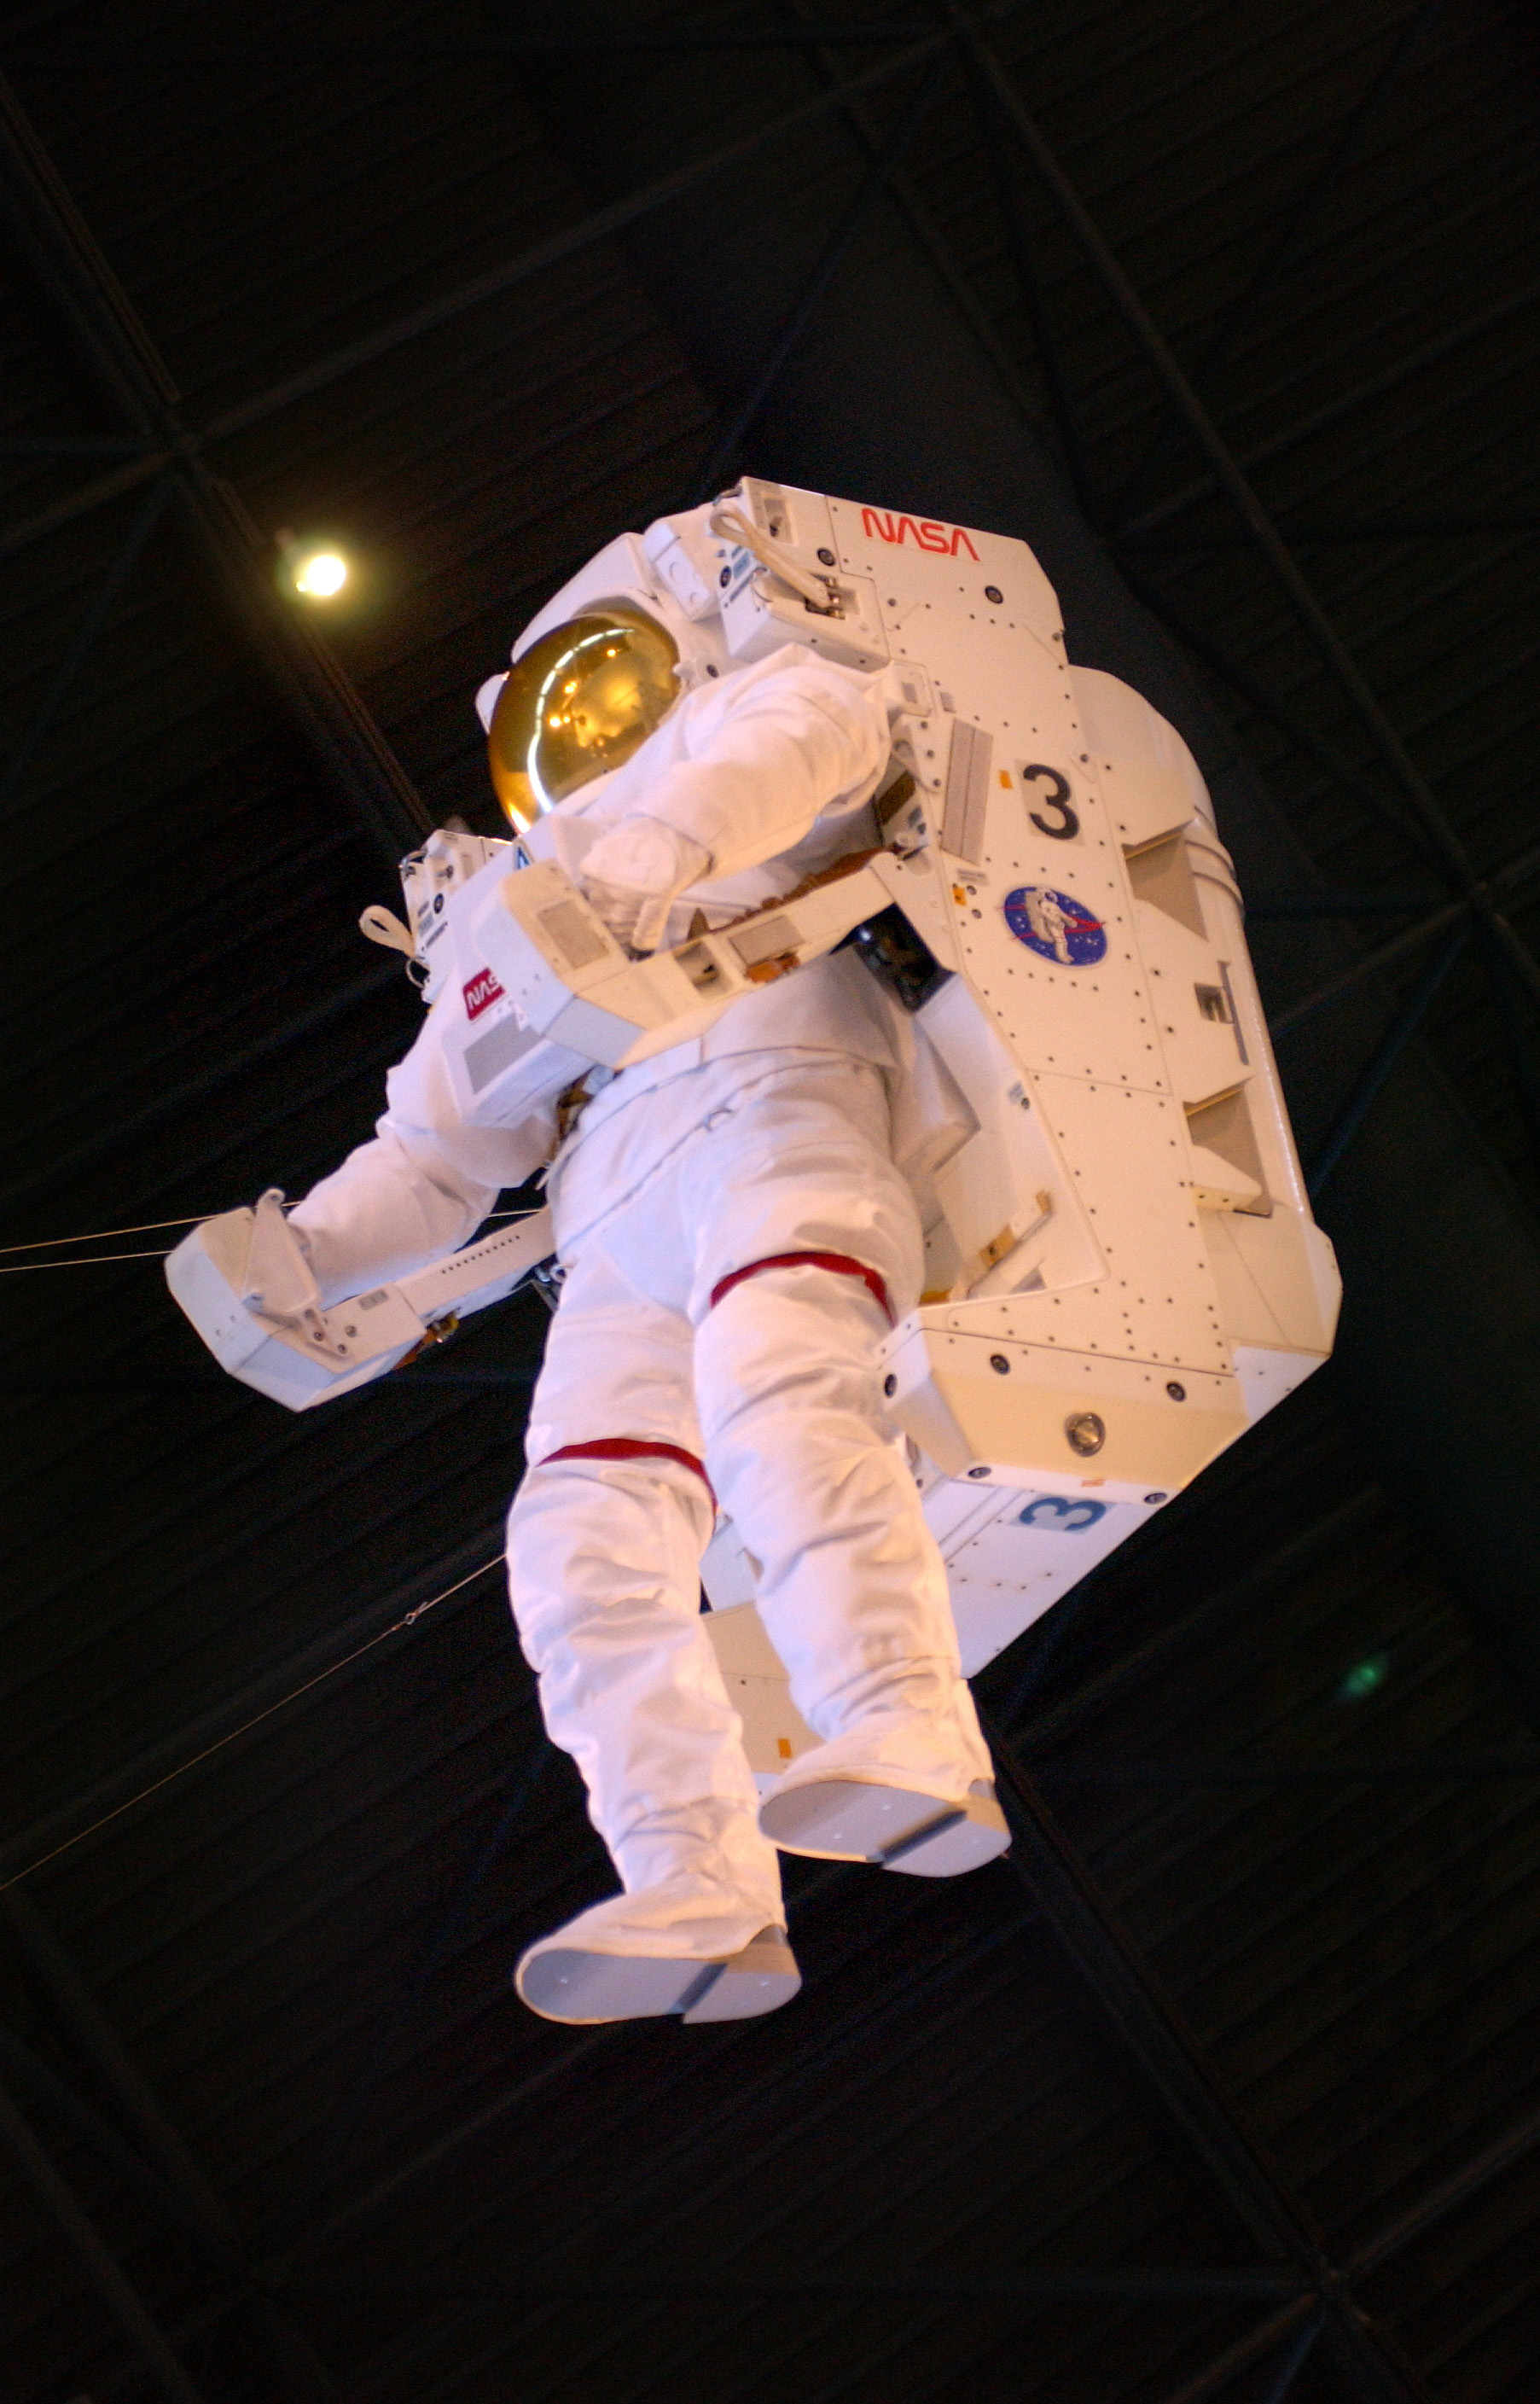 astronaut untethered space walk - photo #15